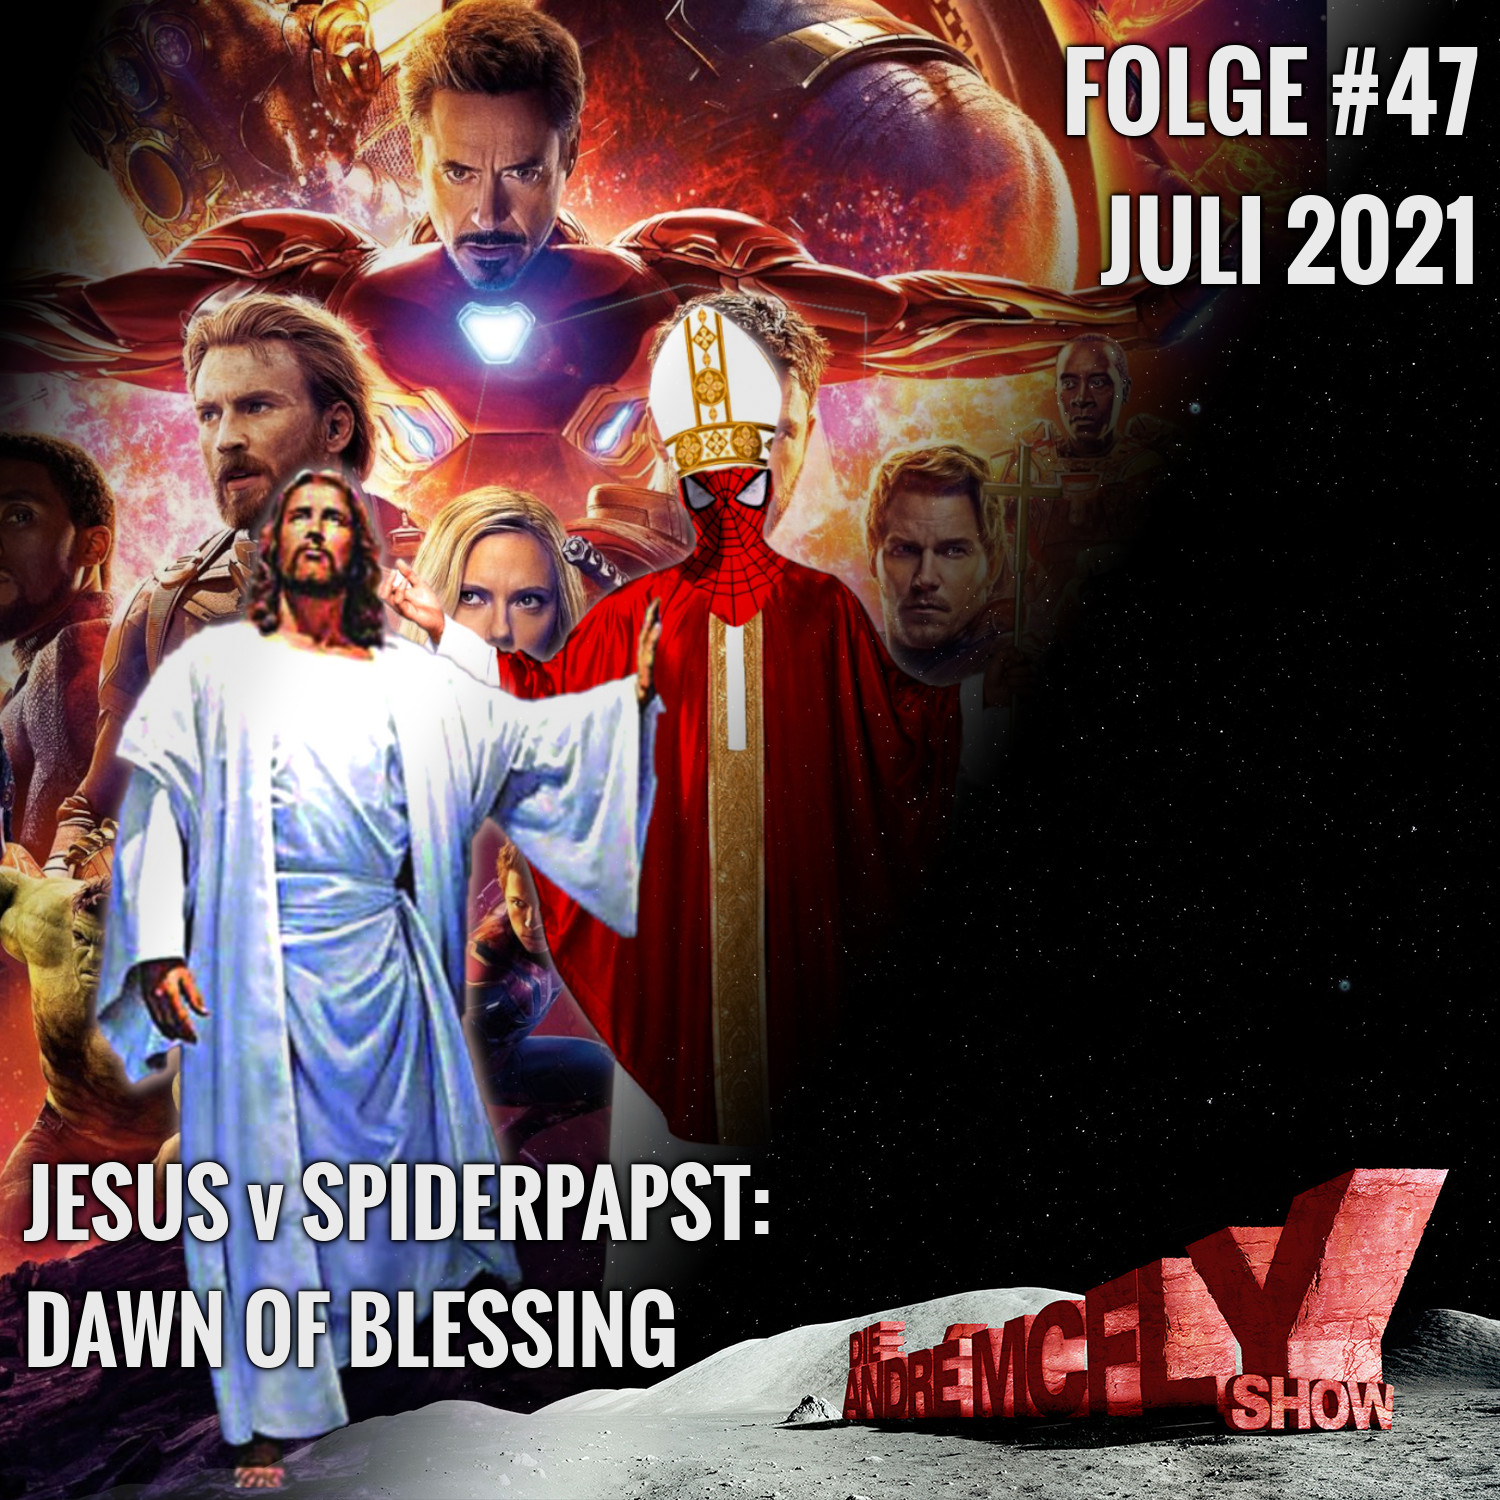 Die André McFly Show #47   Jesus v Spiderpapst: Dawn of Blessing